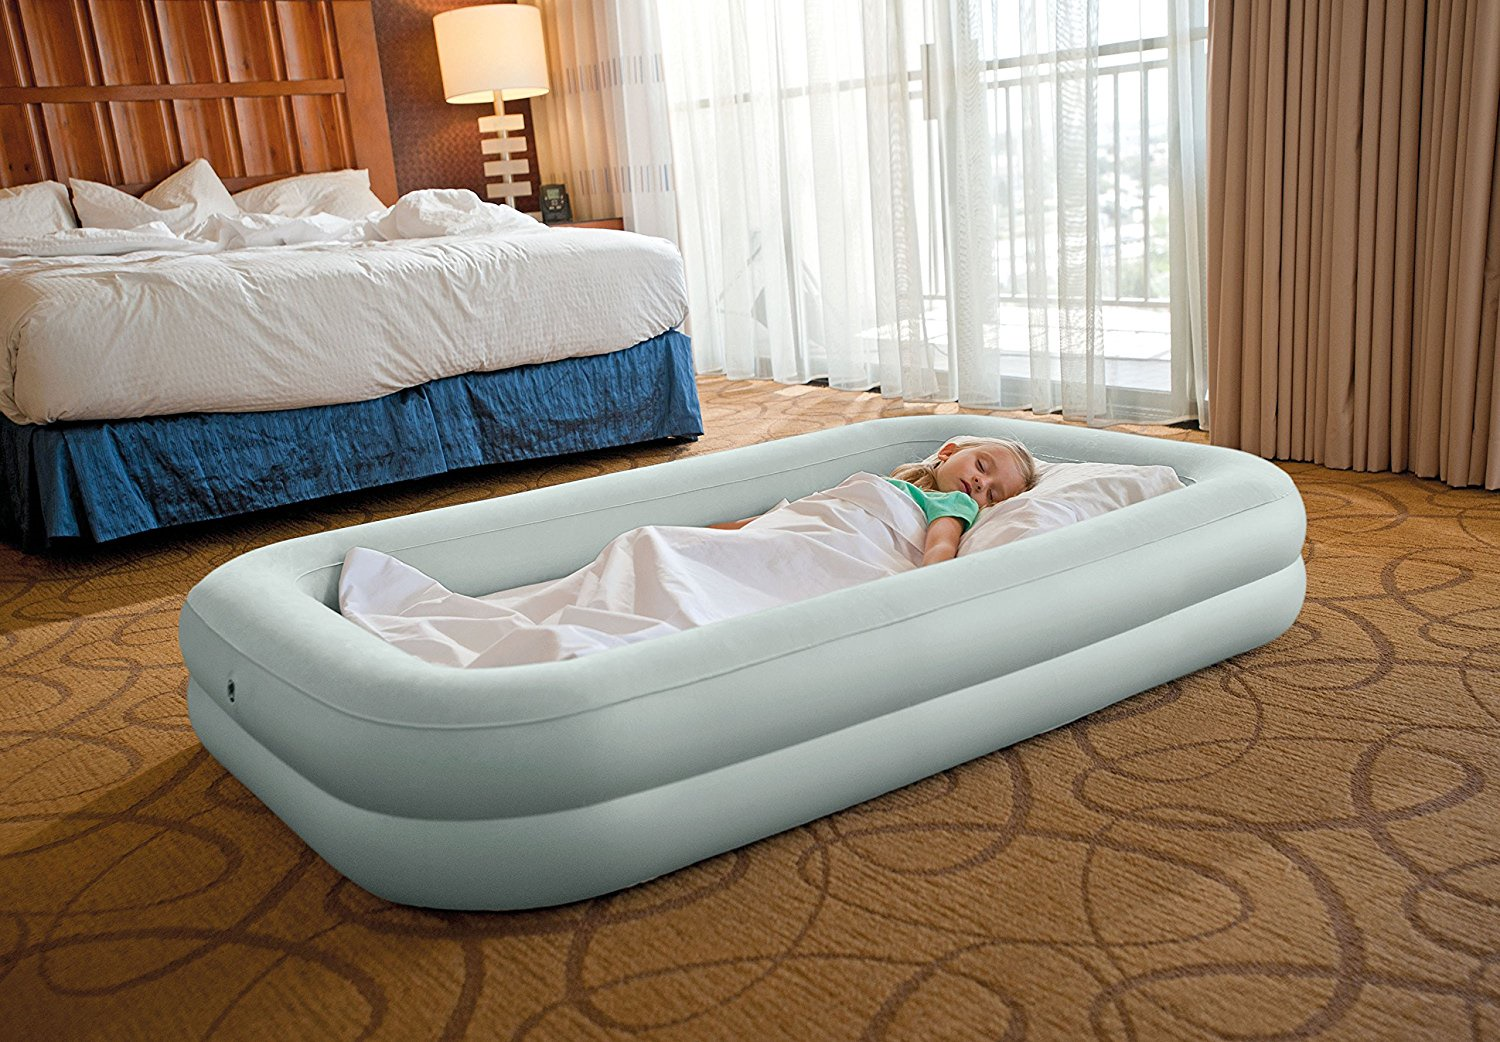 Toddler Air Mattress Reviews and Buying Guide by www.snoremagazine.com